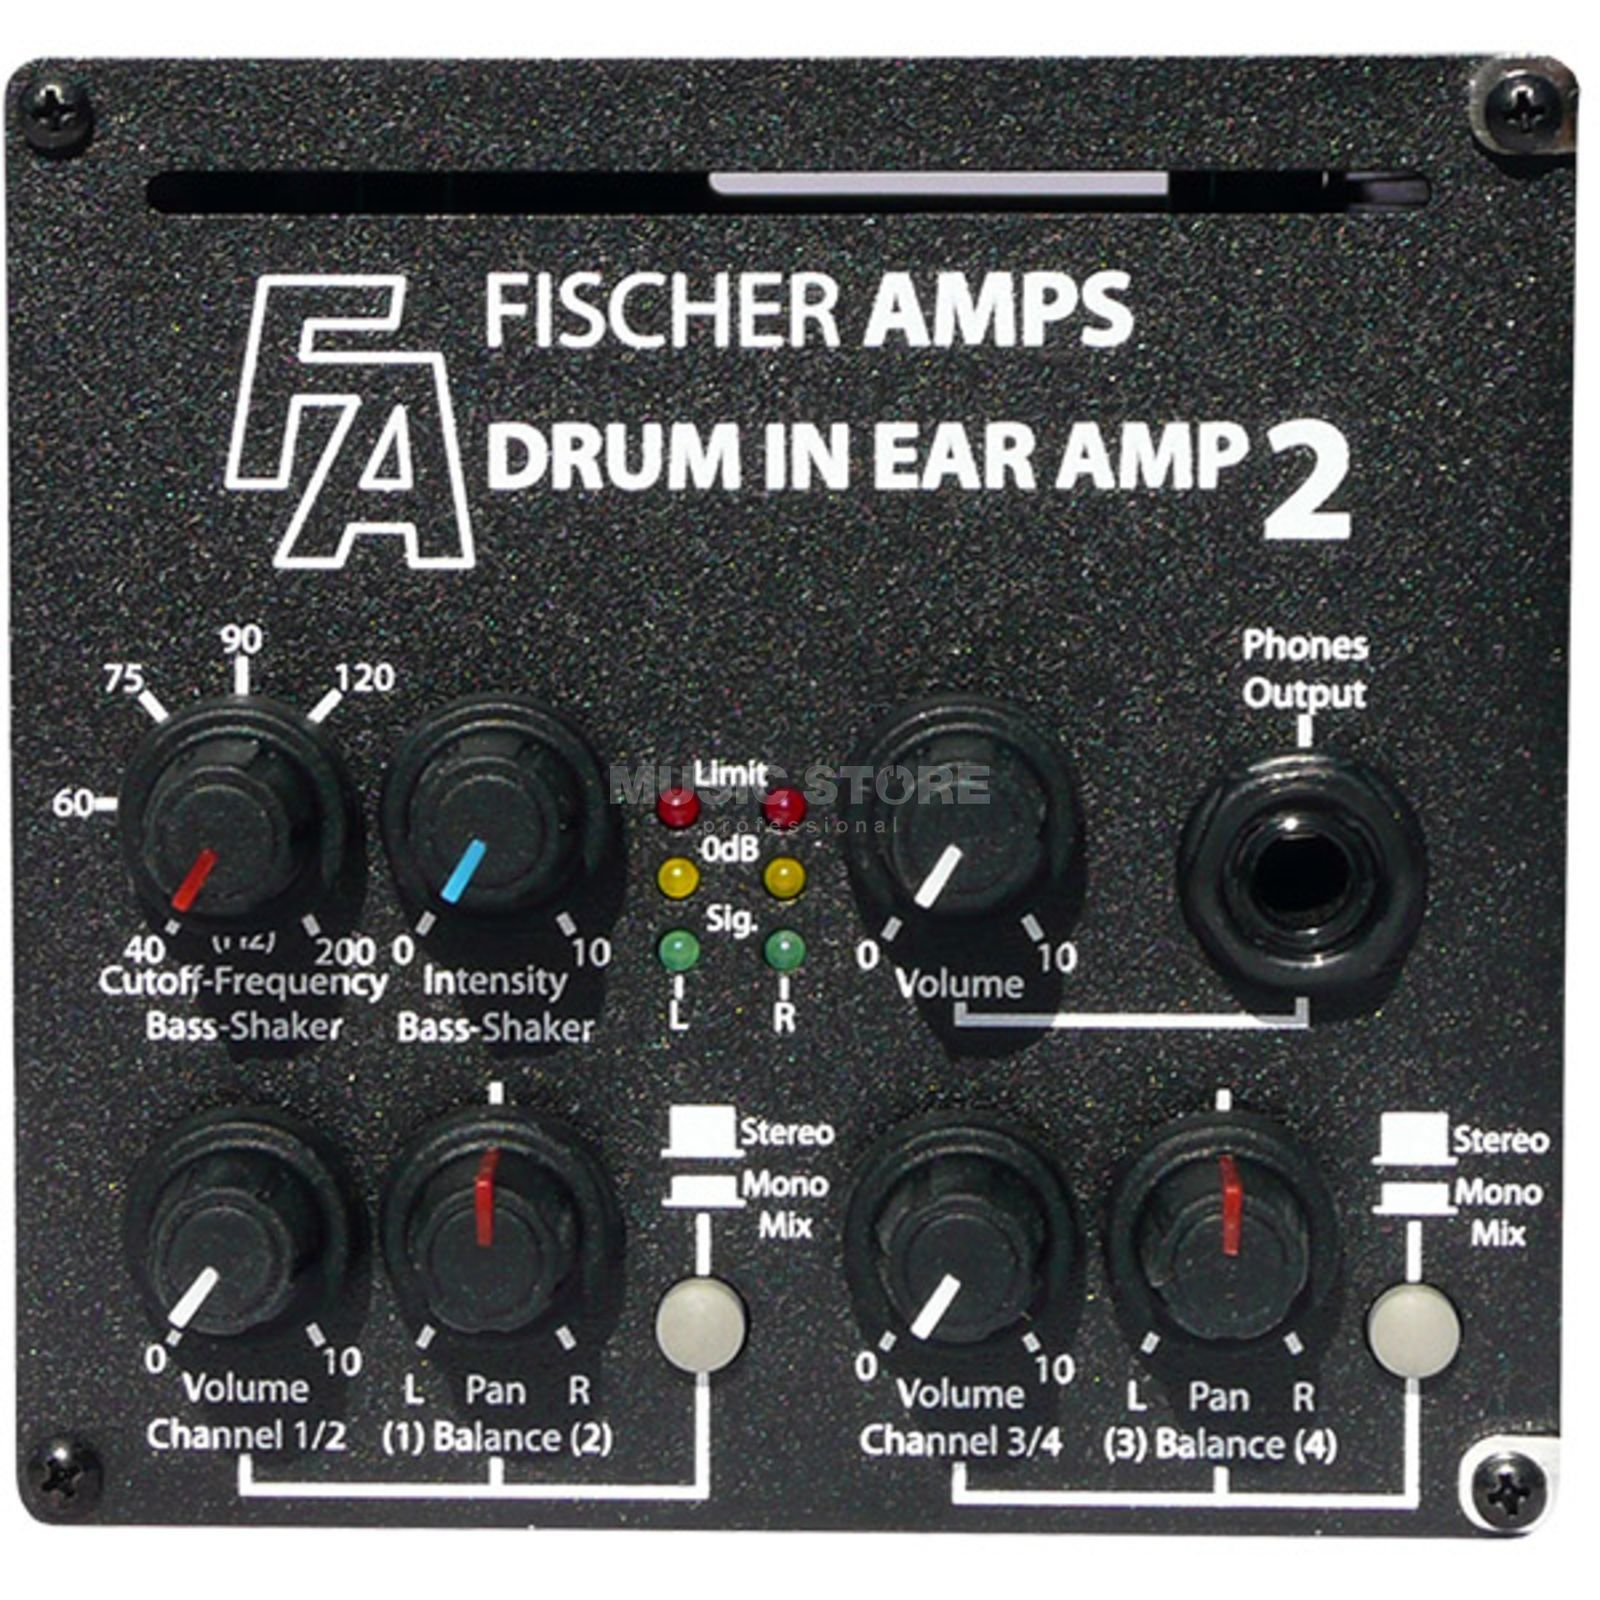 Fischer Amps Drum InEar Amp 2 incl.  Bass-Shaker +Holder Produktbillede